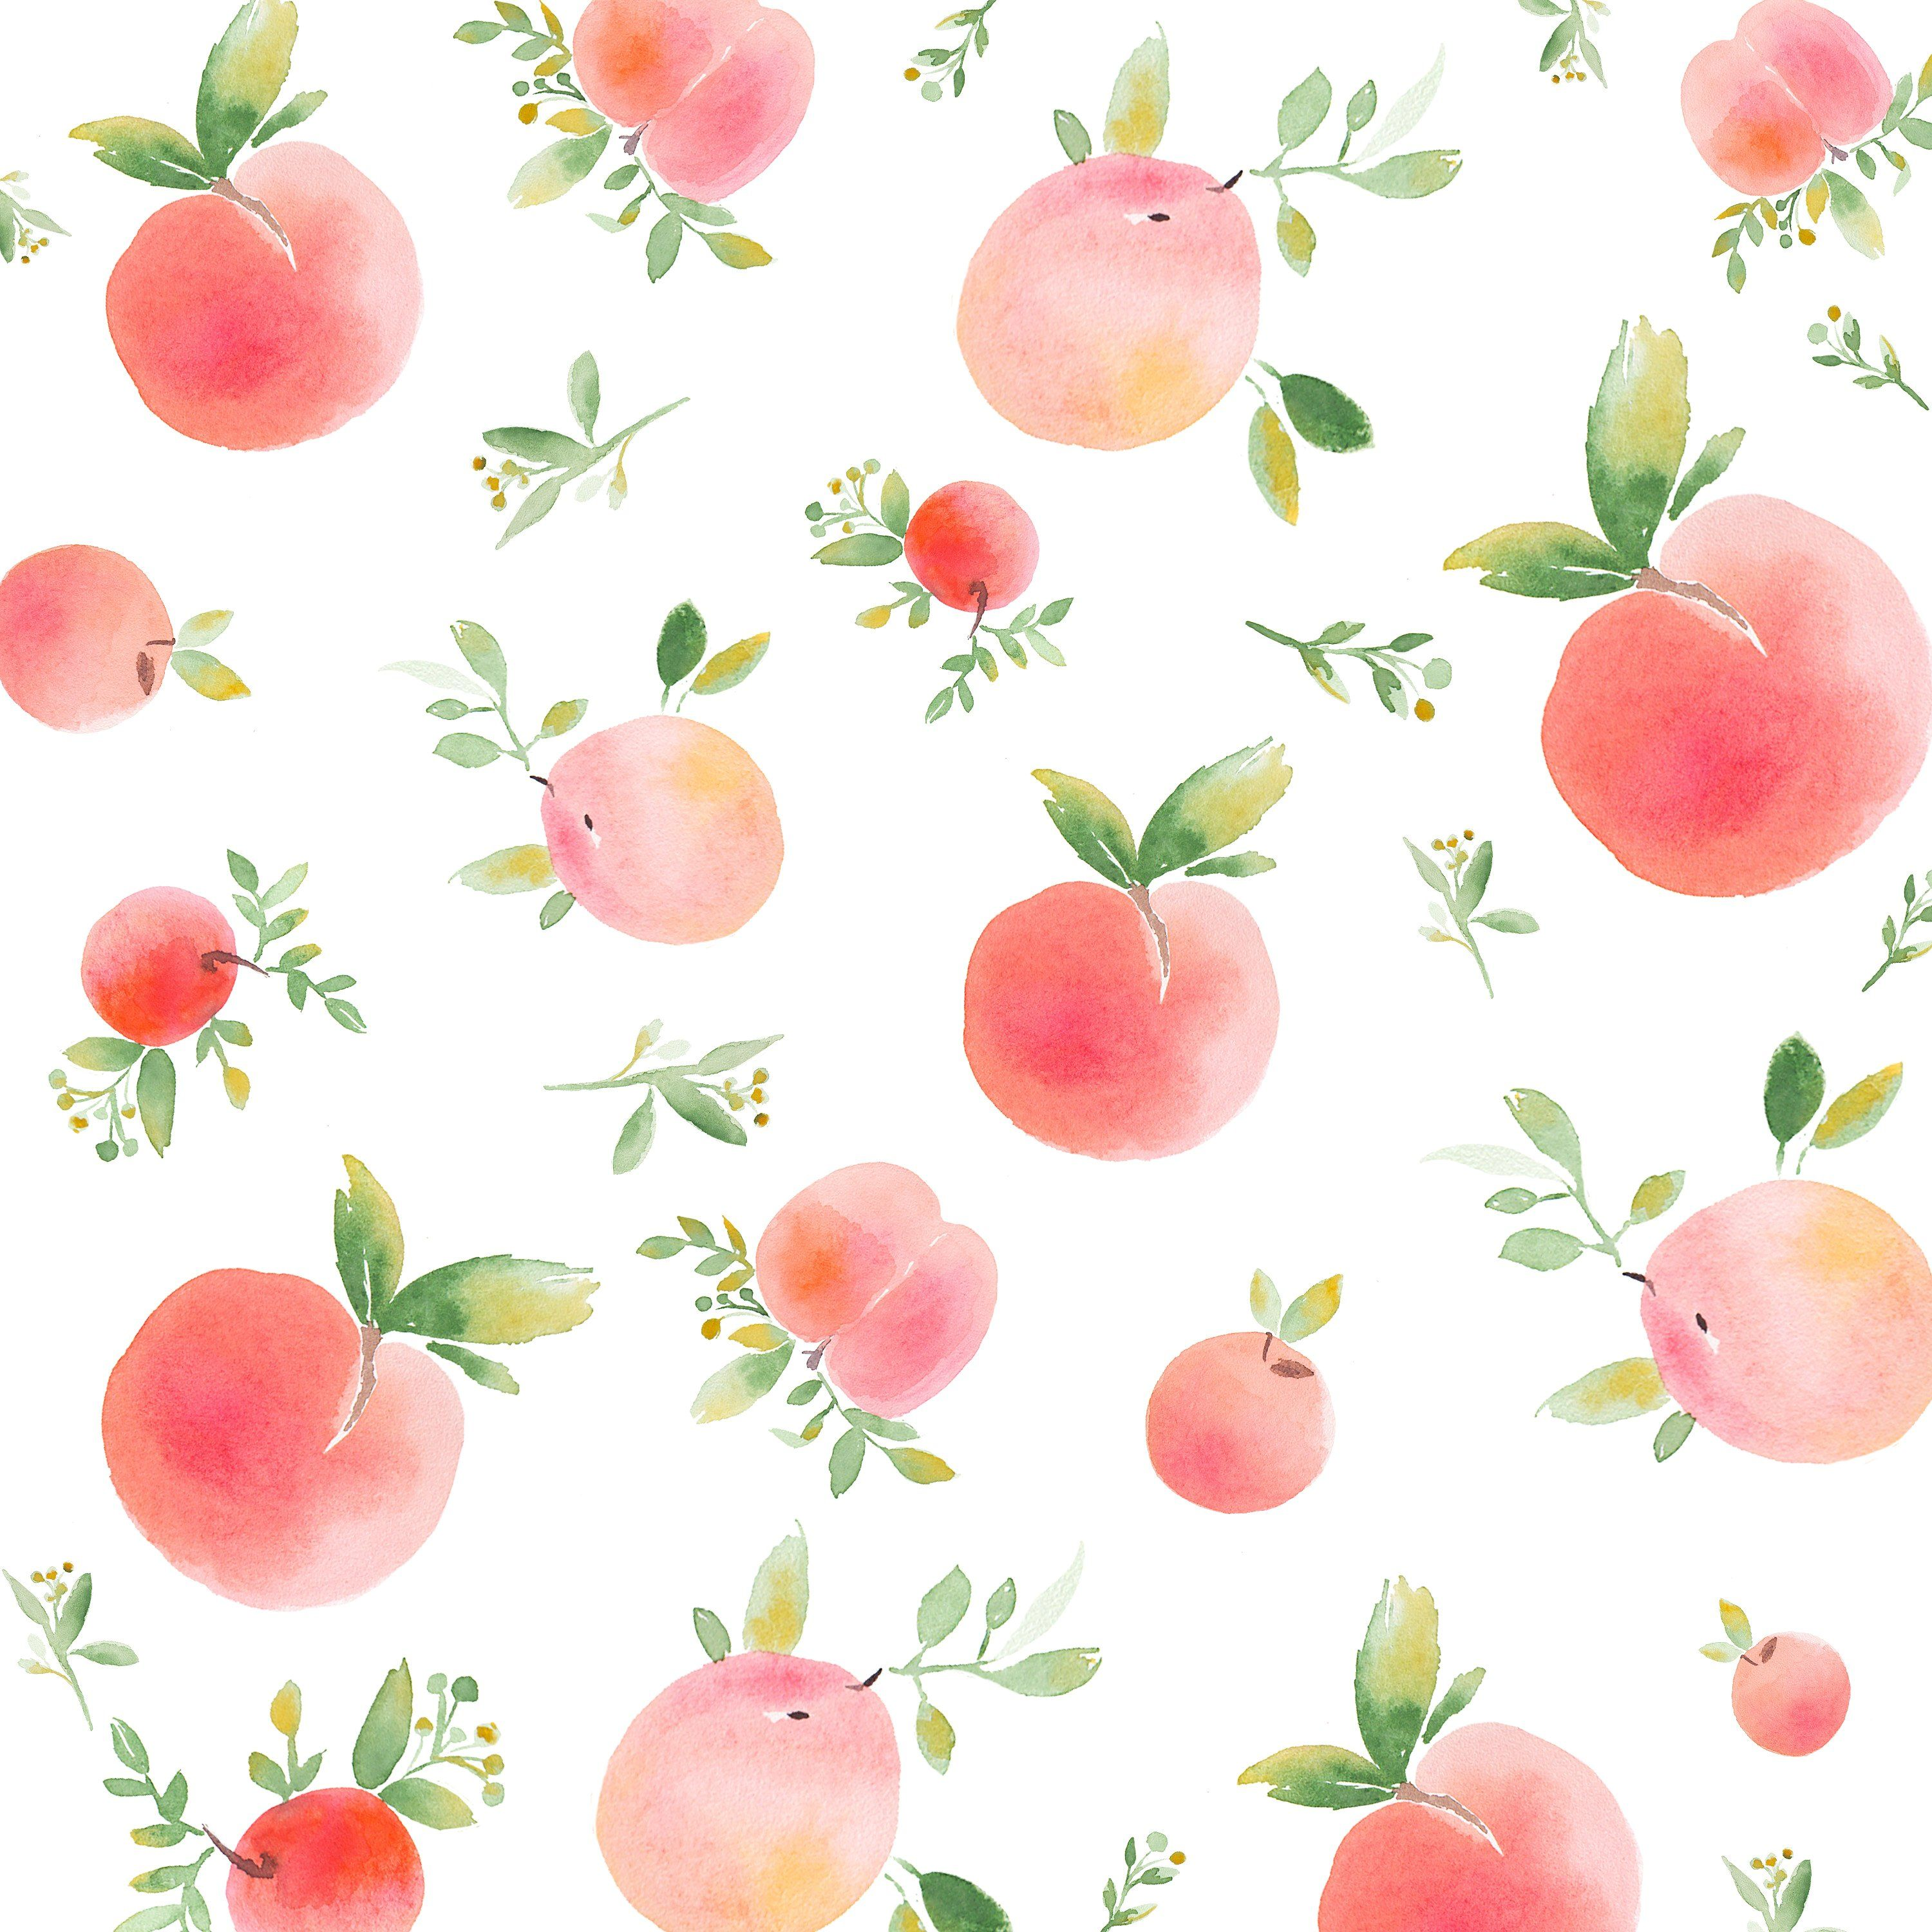 watercolor lemon and peach patterns peach paint peach background painting art projects watercolor lemon and peach patterns